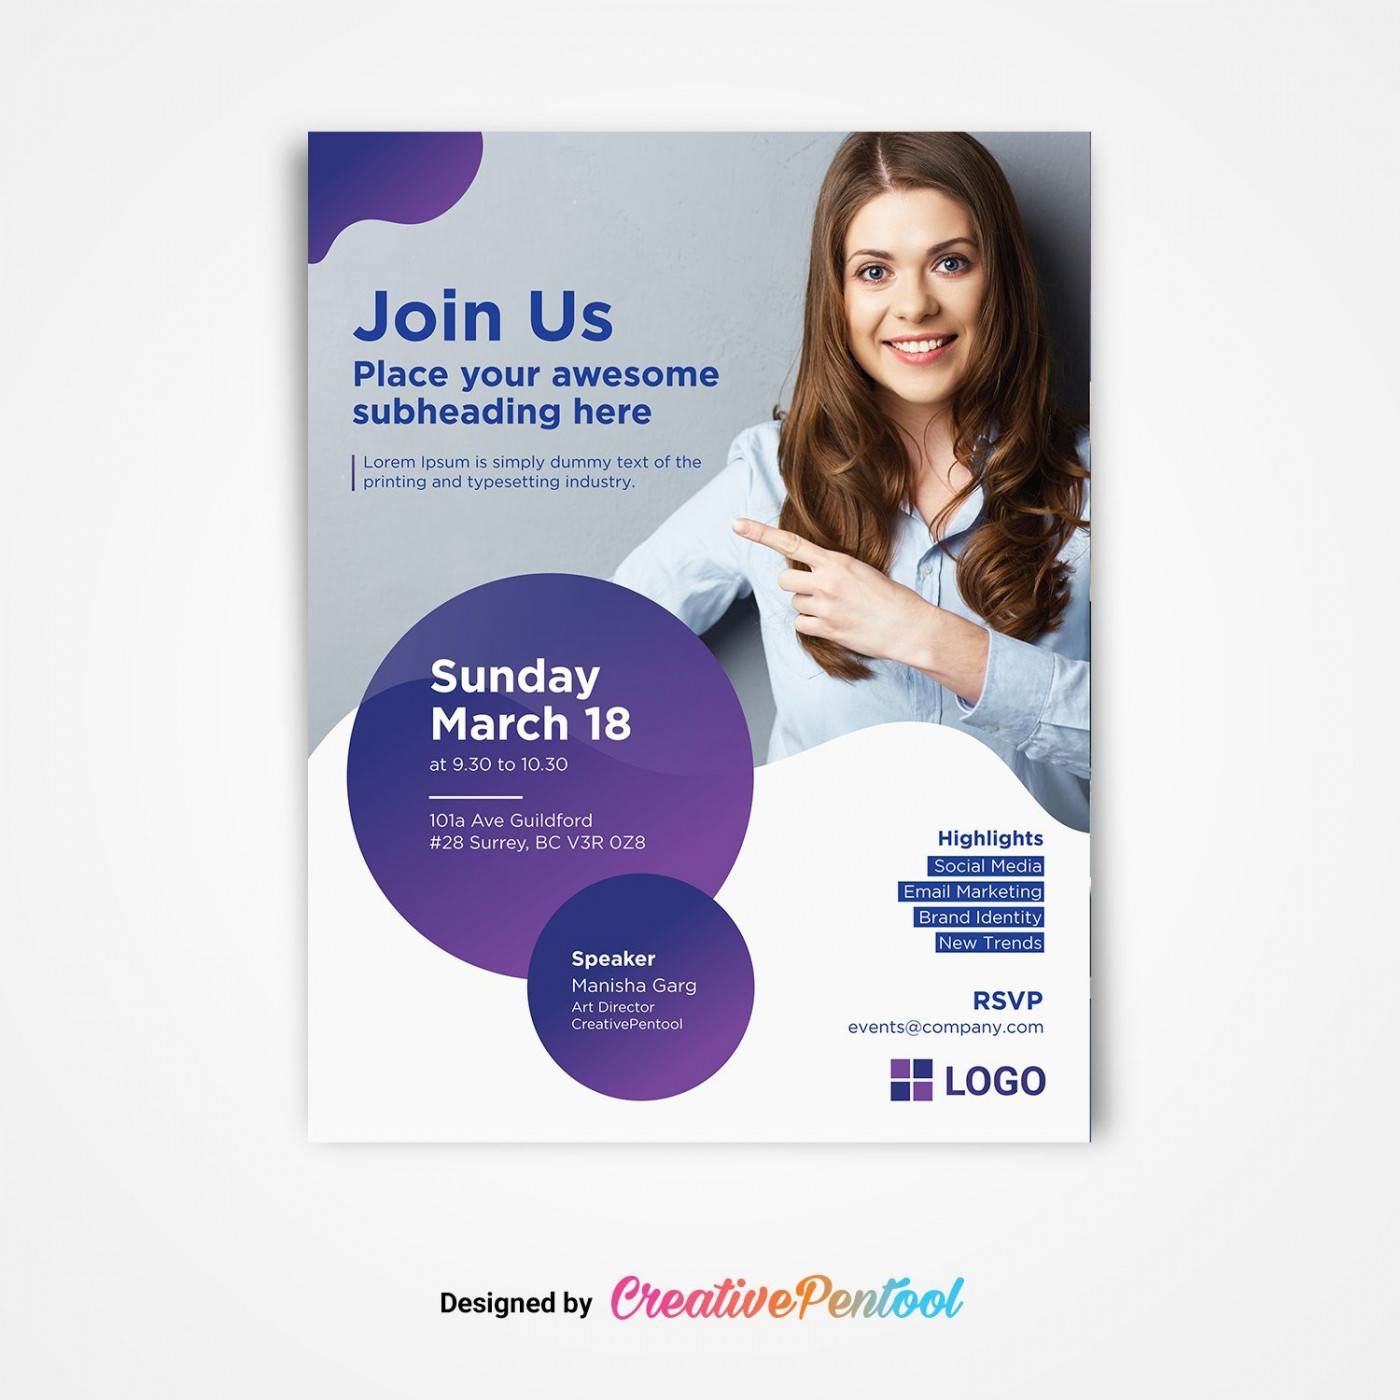 009 Unforgettable Free Event Flyer Template Photo  Printable Church Planning1400